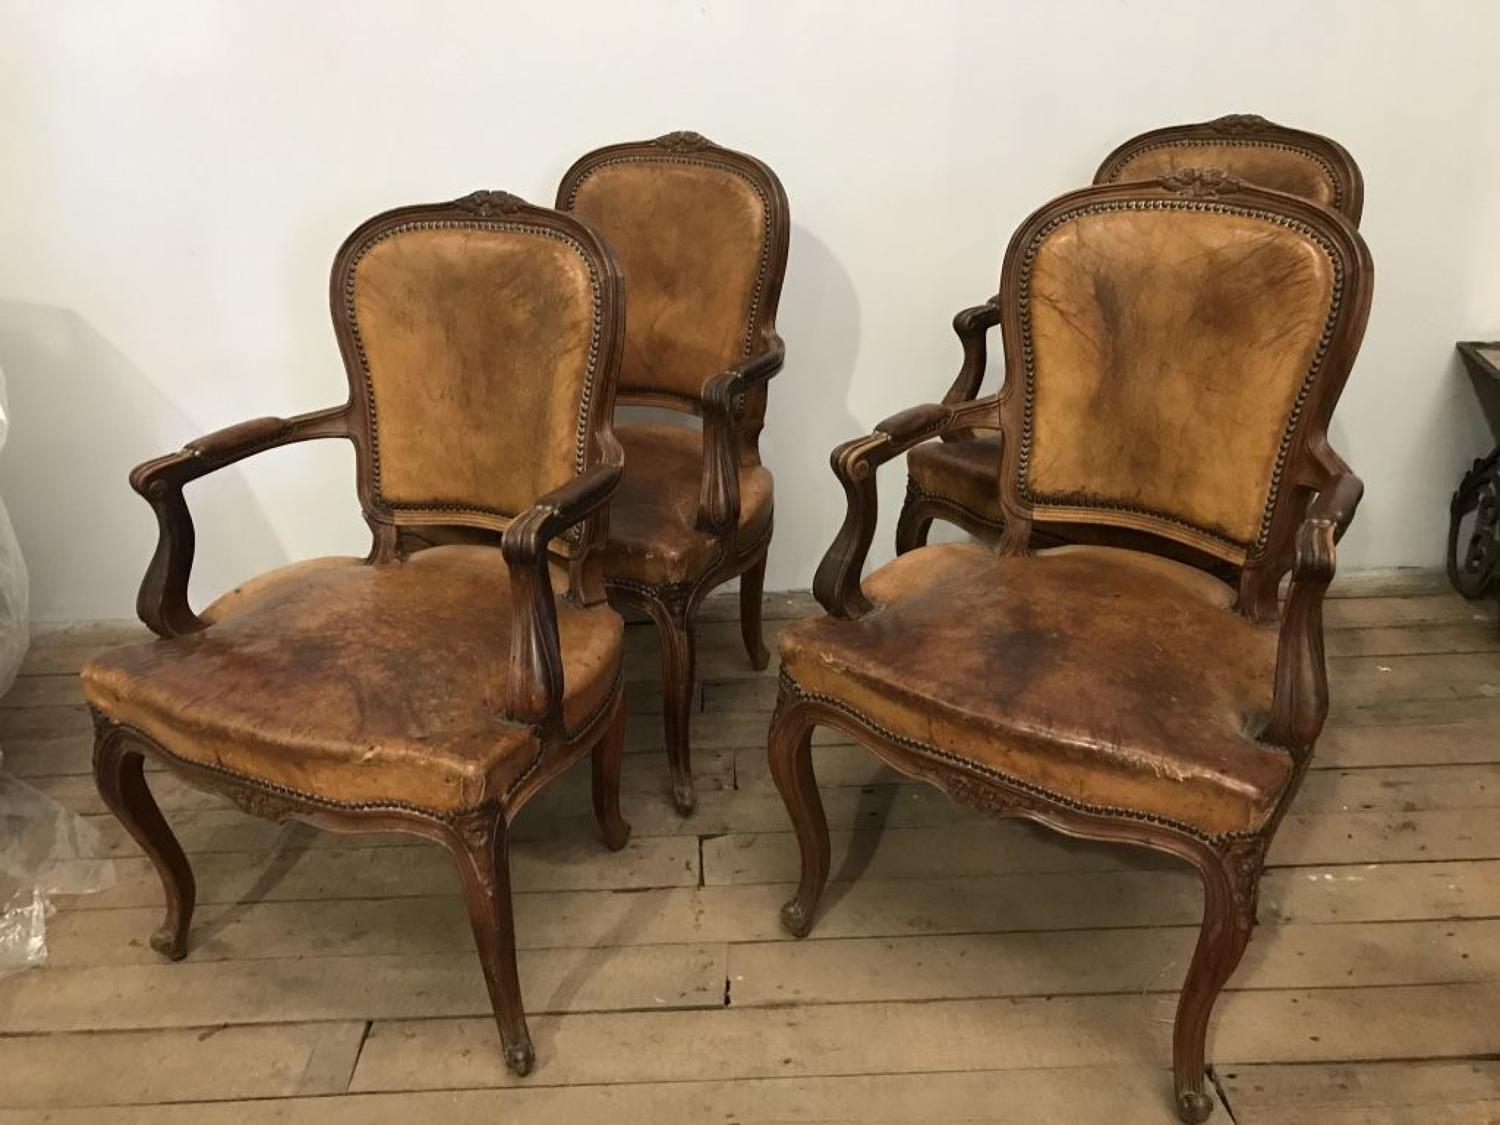 Set Of Four 19th C Spanish Olivewood Fauteuils Upholstered In Chestnut